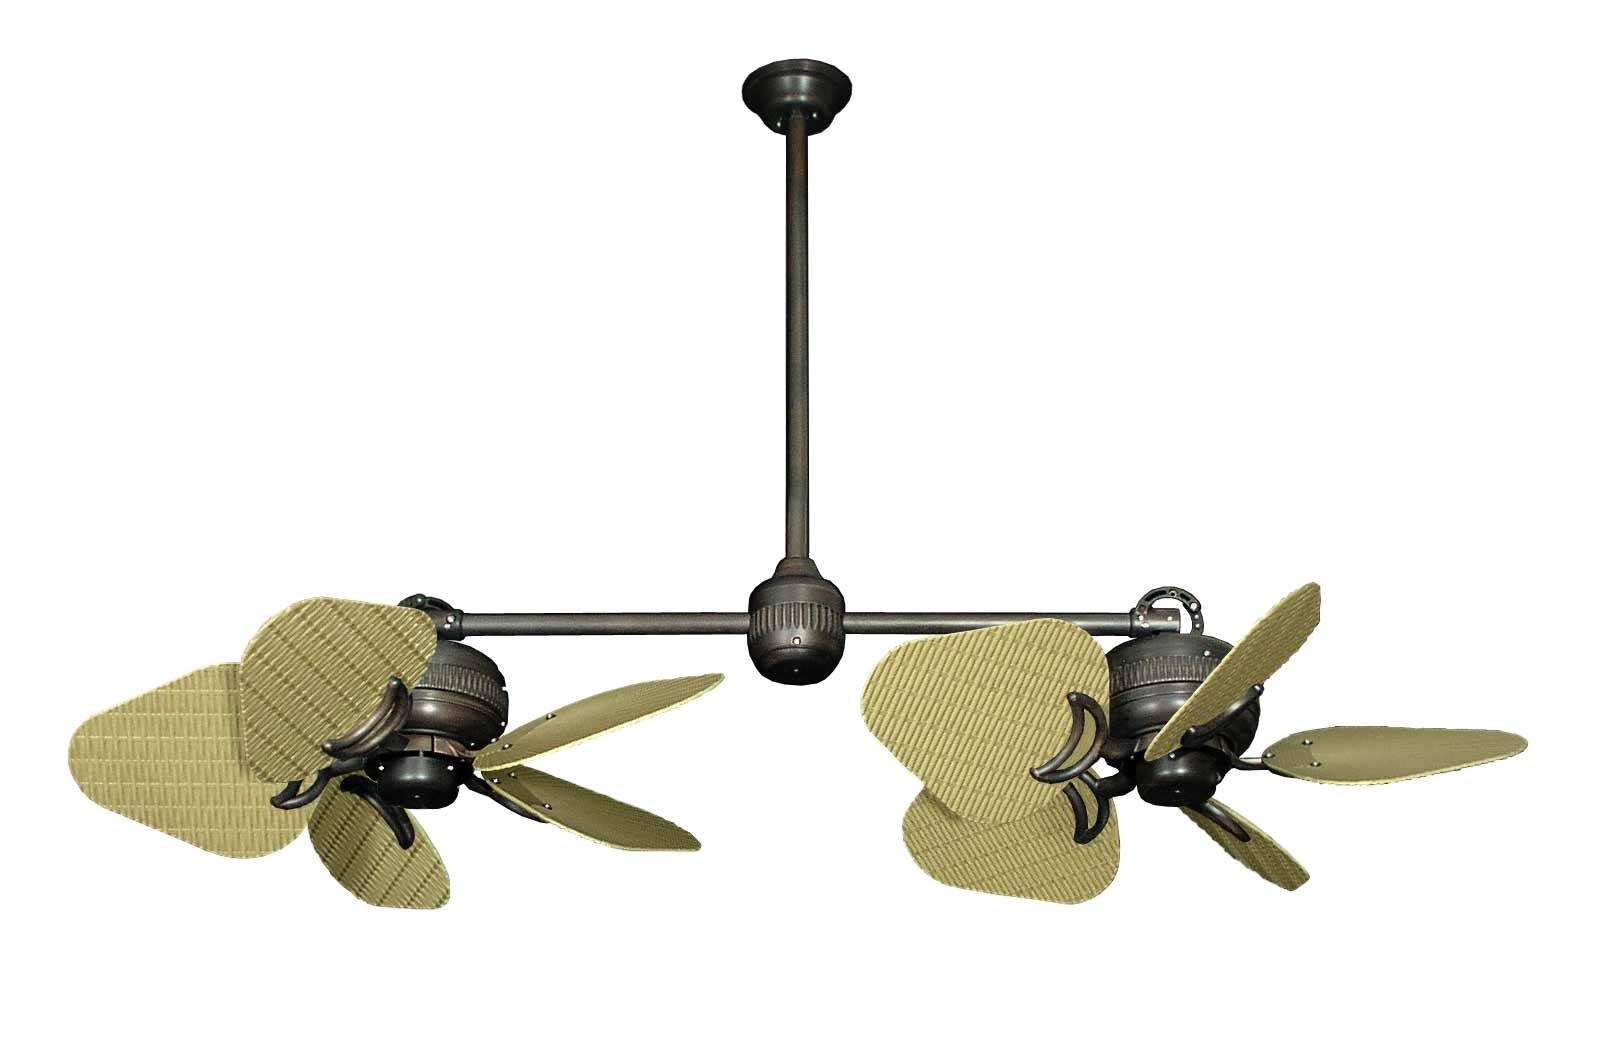 Wicker Outdoor Ceiling Fans With Lights With Regard To Well Known Dans Fan City Miami Twin Star Ii Double Ceiling Fan Abs Wicker/leaf (View 19 of 20)